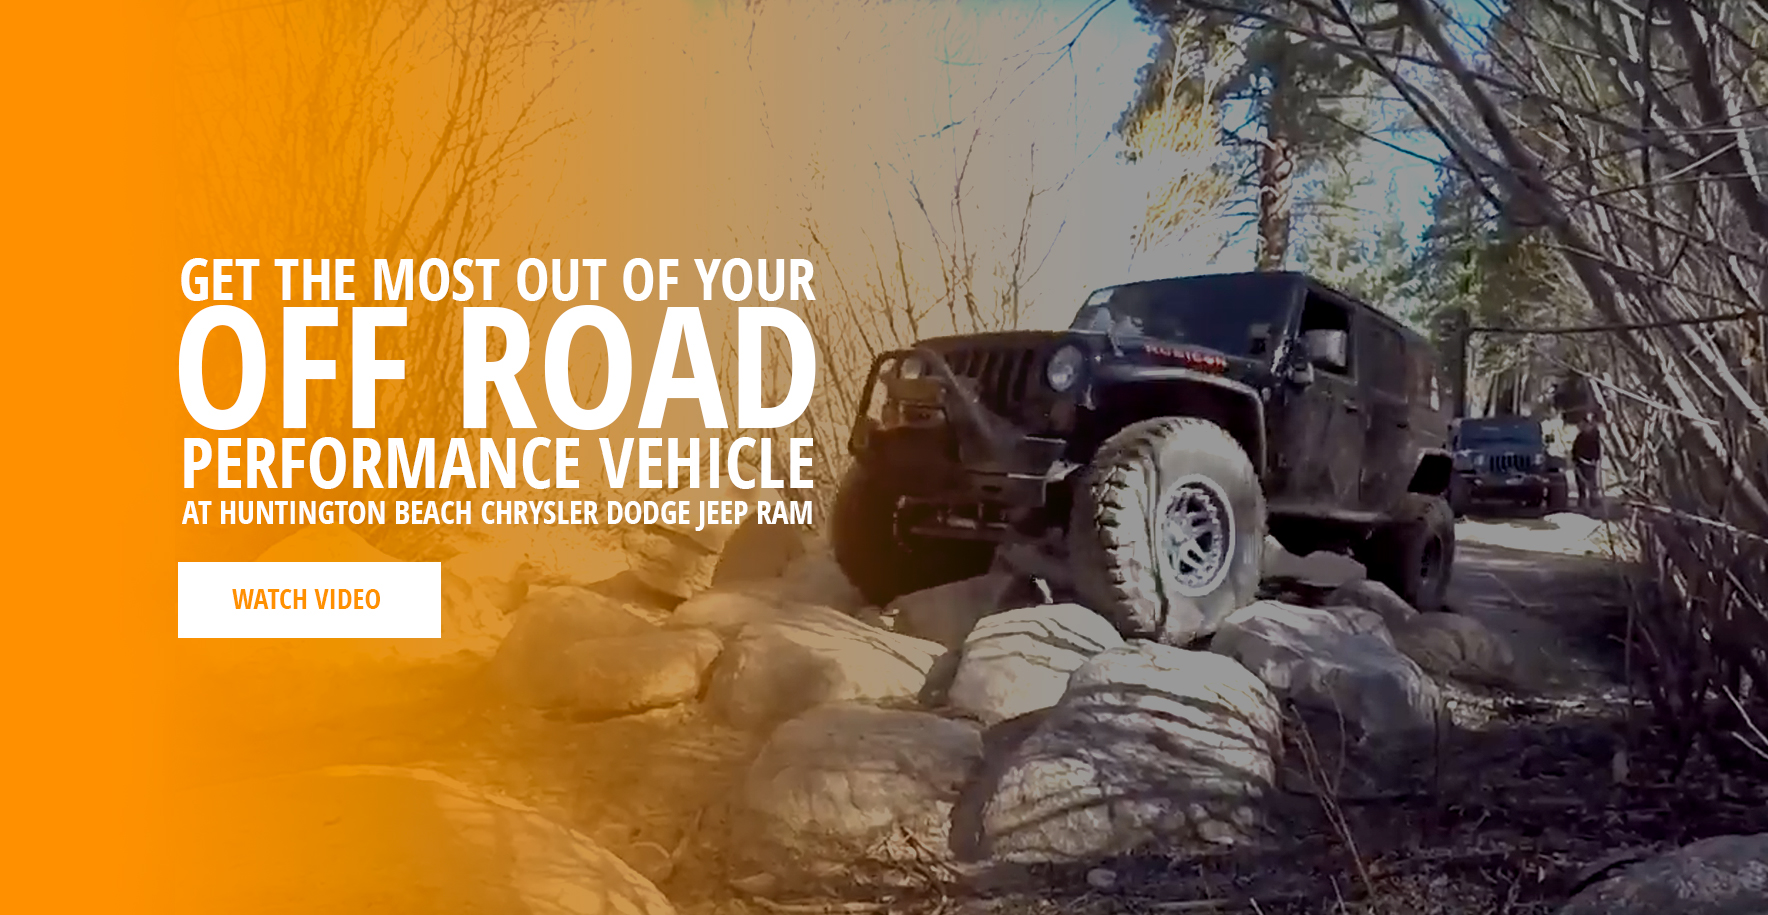 Get the Most Out of Your Off Road Performance Vehicle at Huntington Beach Chrysler Dodge Jeep RAM